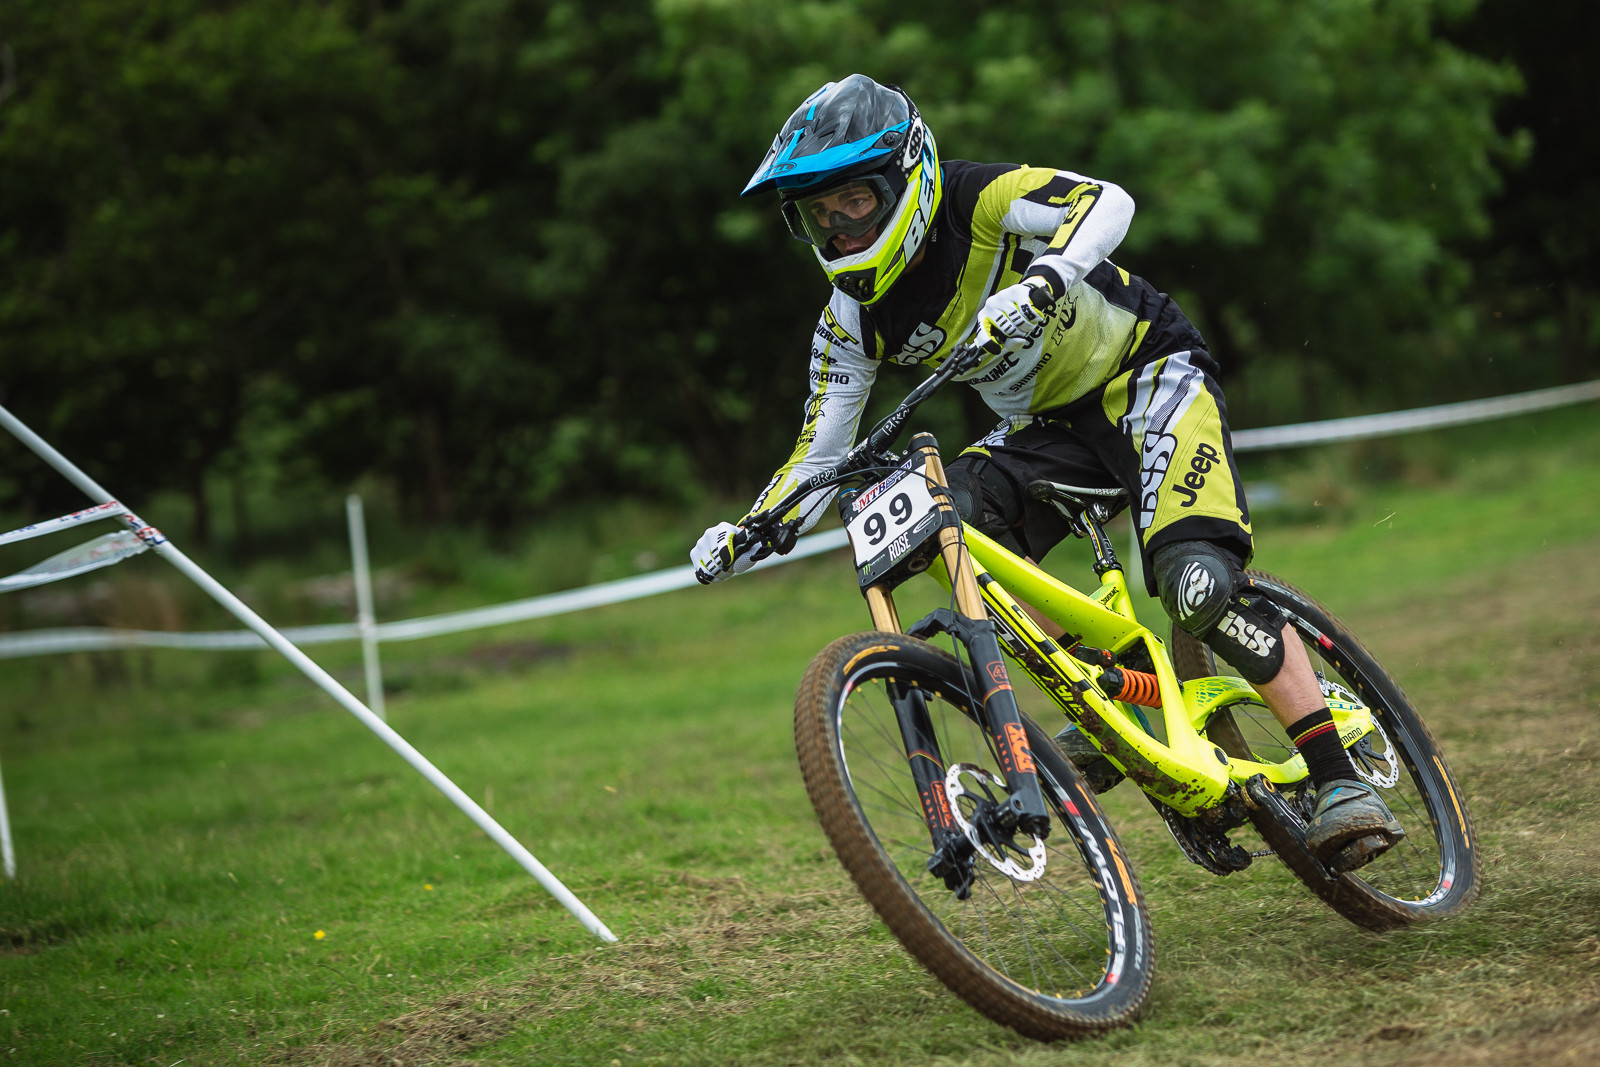 Taylor Vernon, British DH Series, Bala - RACE REPORT - 2015 British Downhill Series Bala - Mountain Biking Pictures - Vital MTB